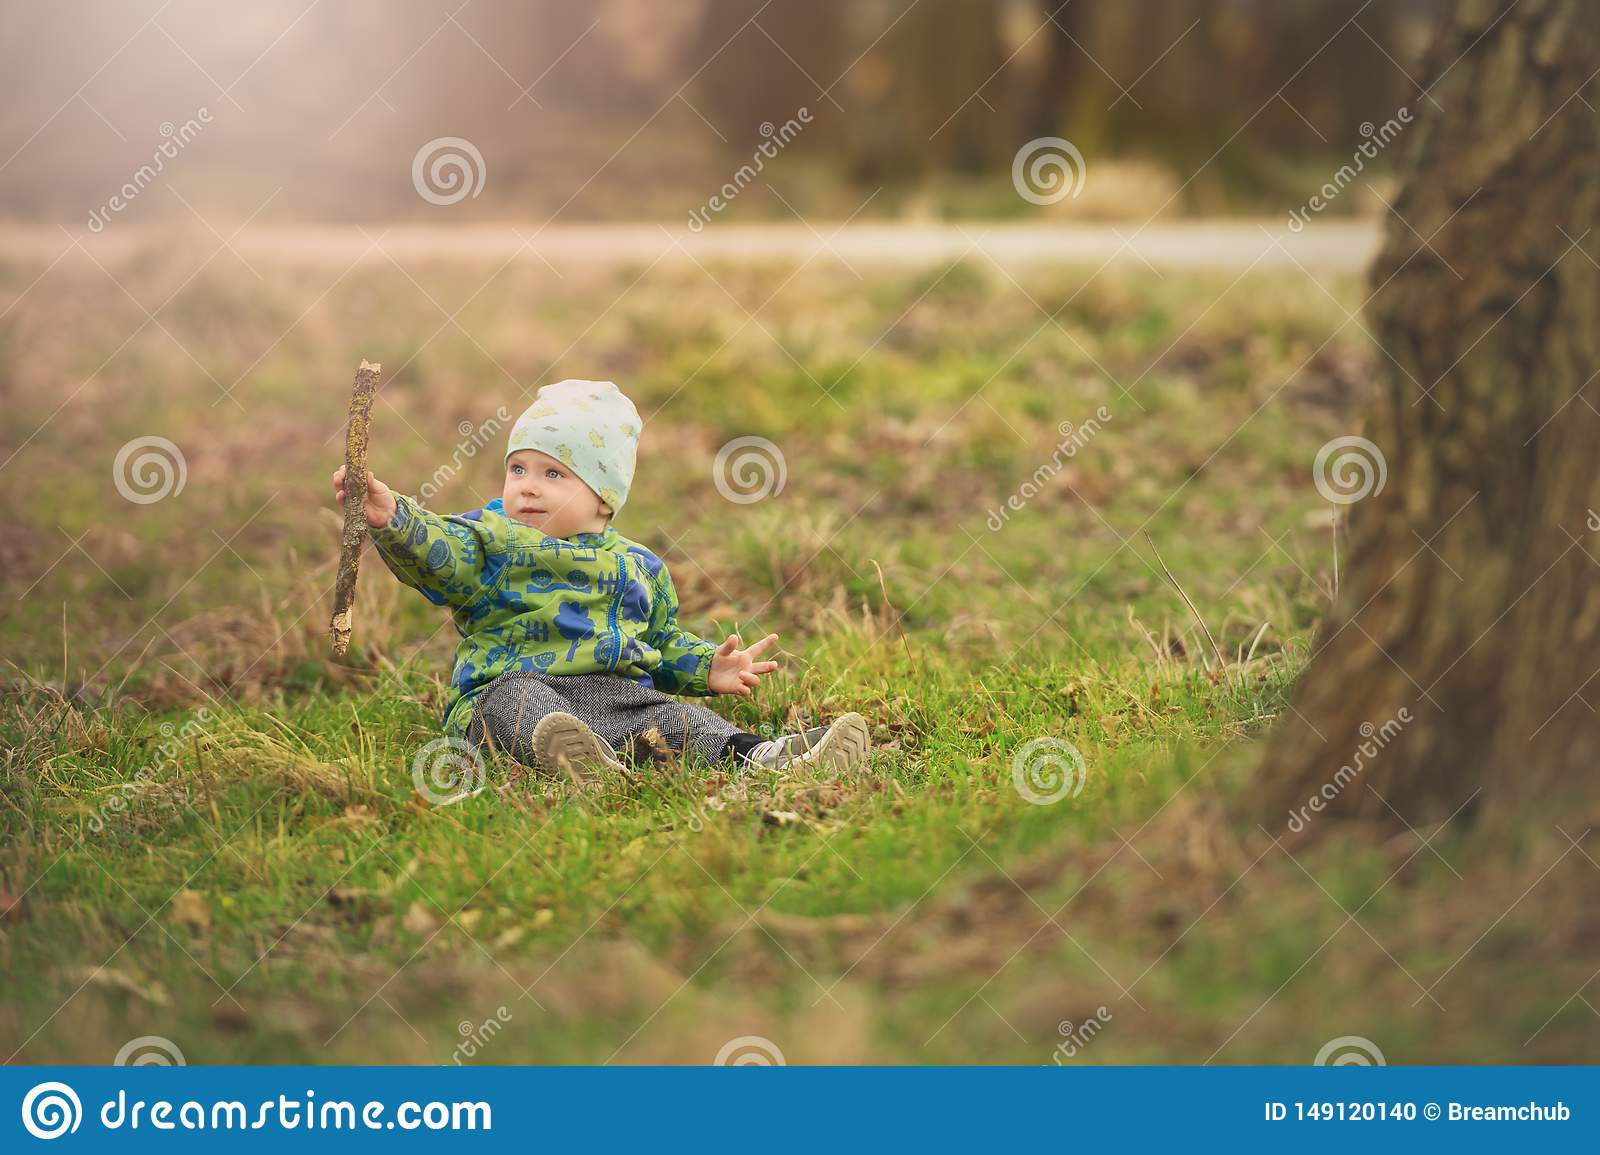 Small boy is sitting on grass and handling stick in spring park near big tree